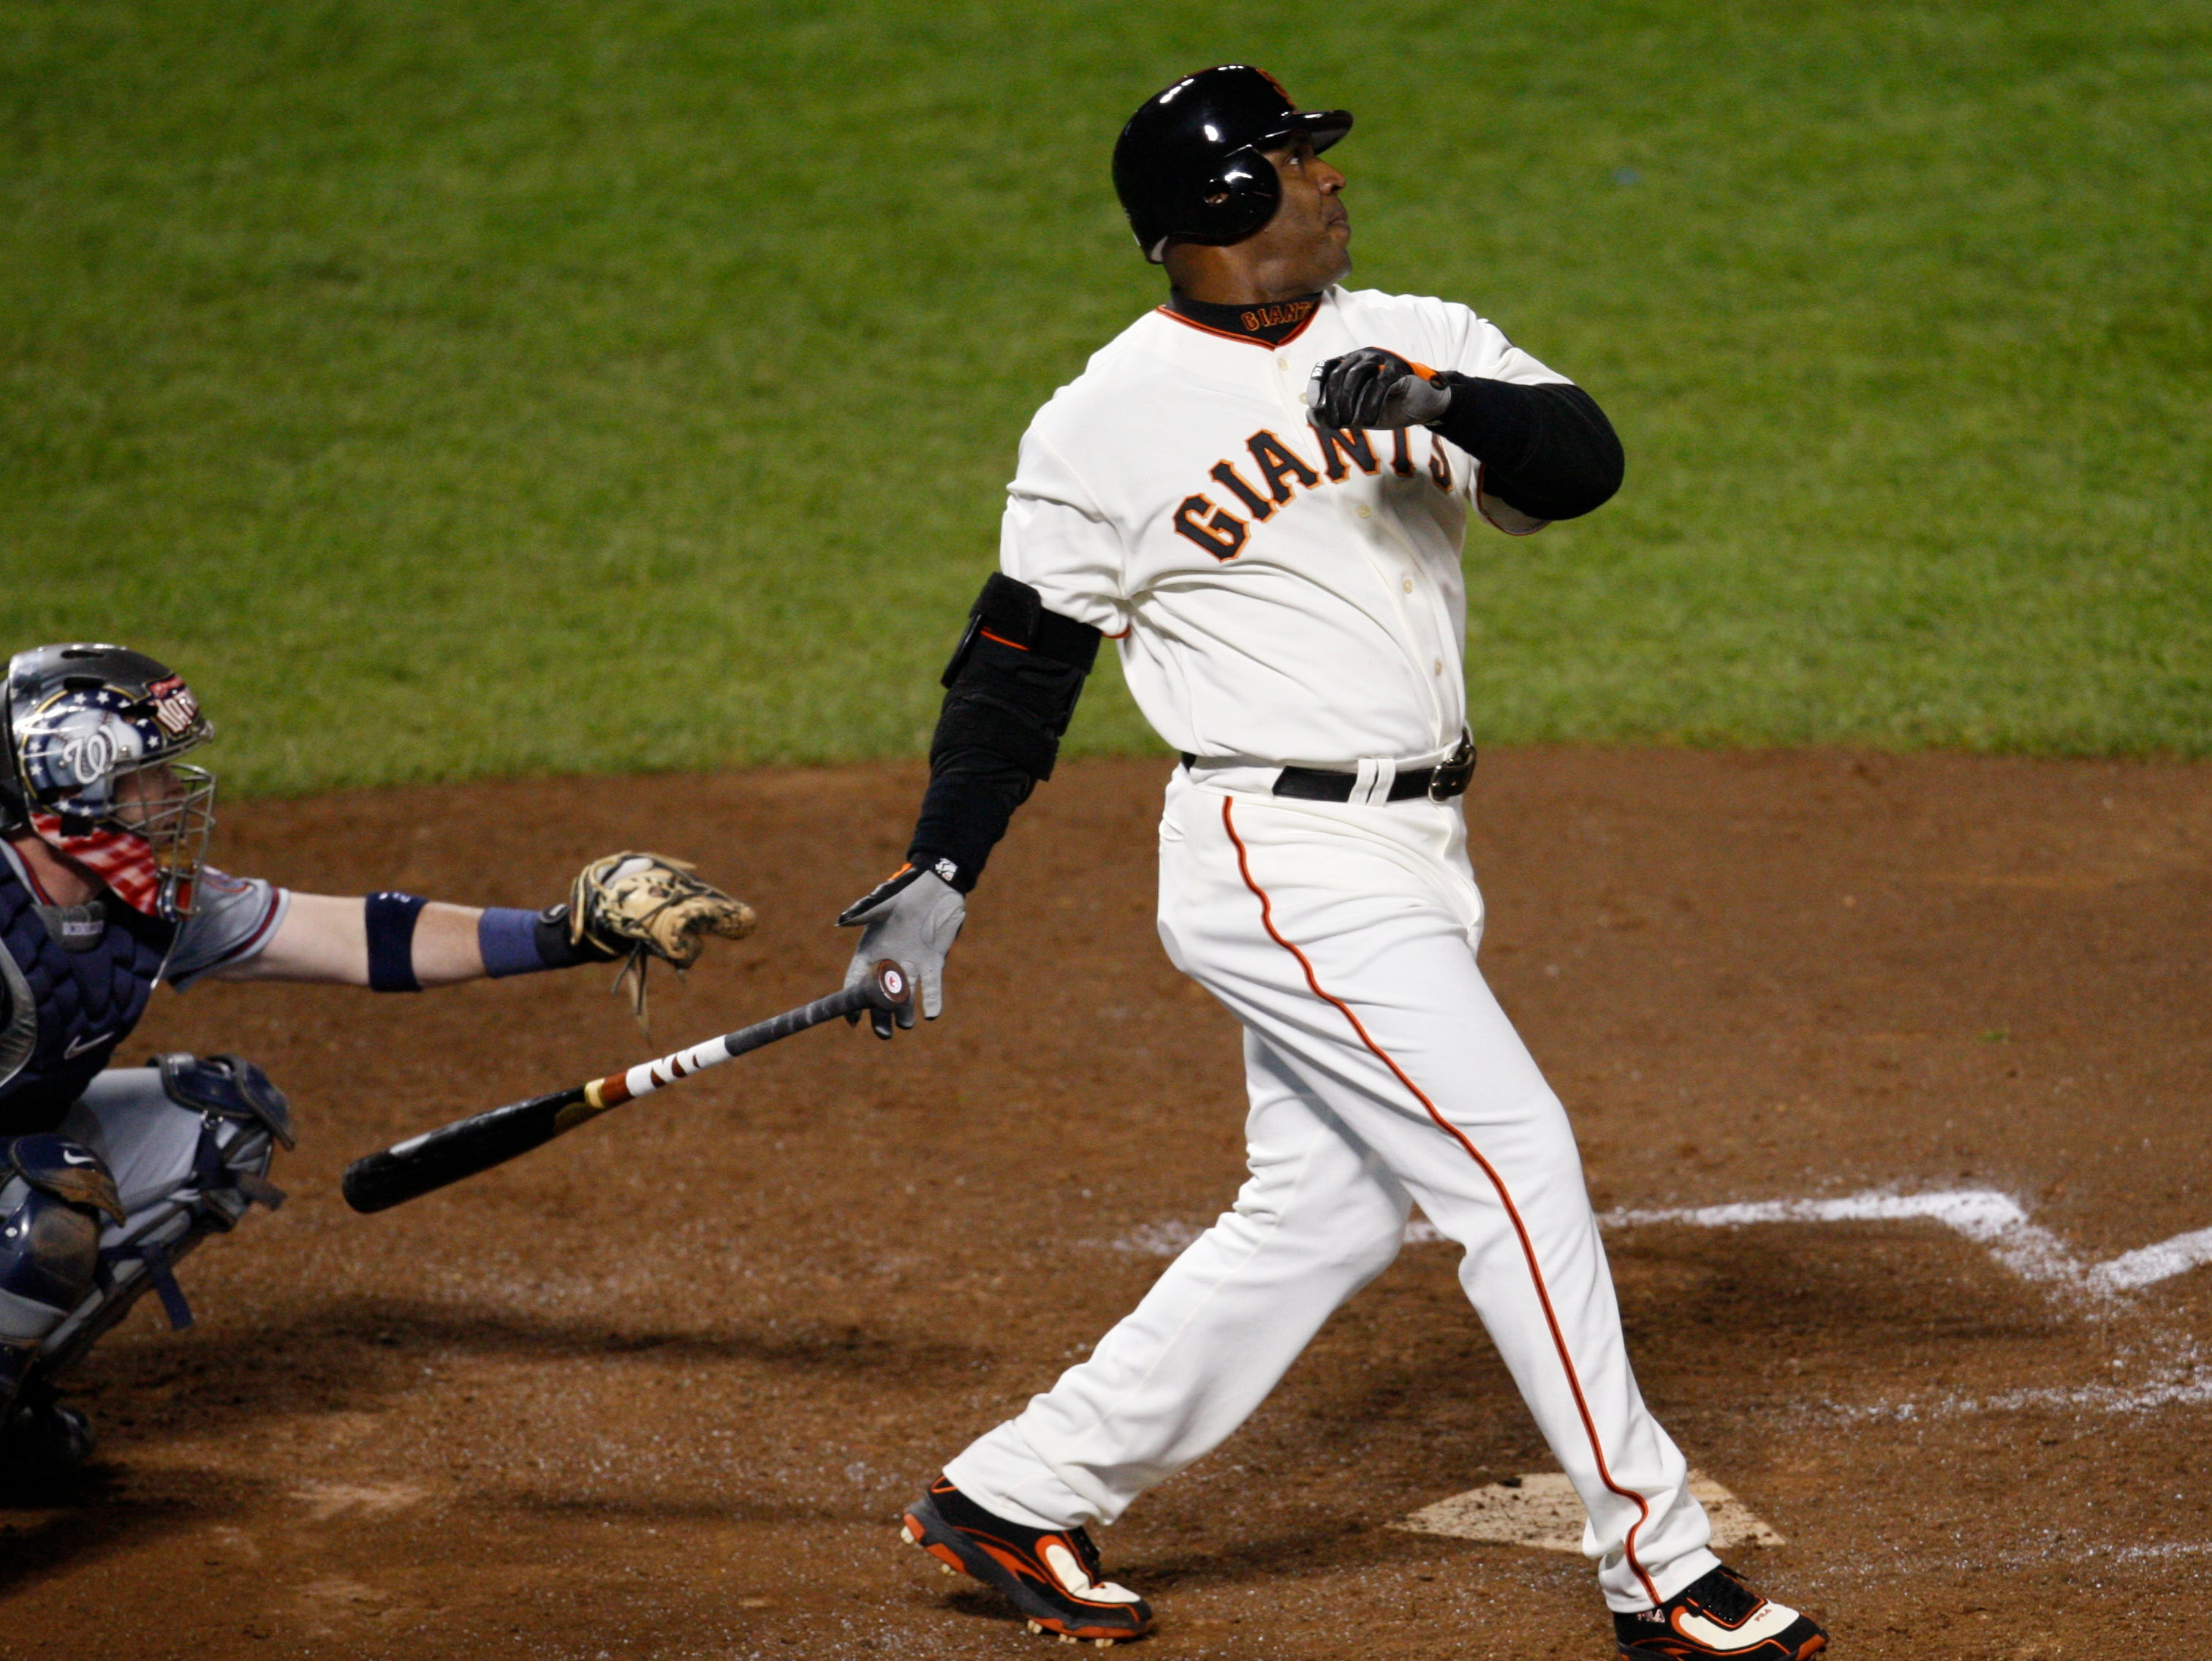 LF Barry Bonds (7th year)